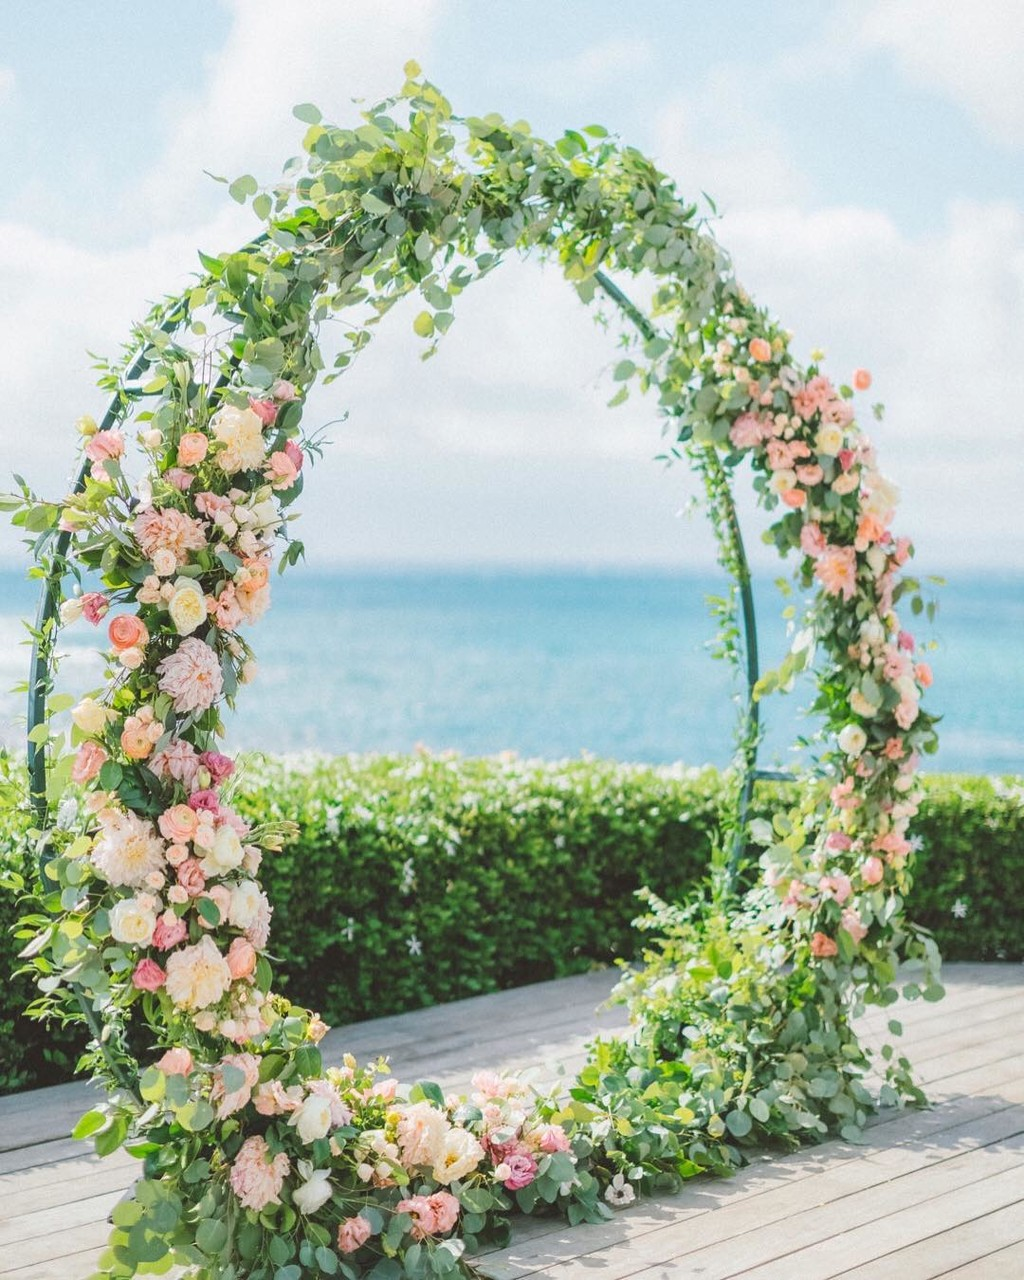 One of the prettiest and epic romantic ceremony arches I've ever seen 😍 .